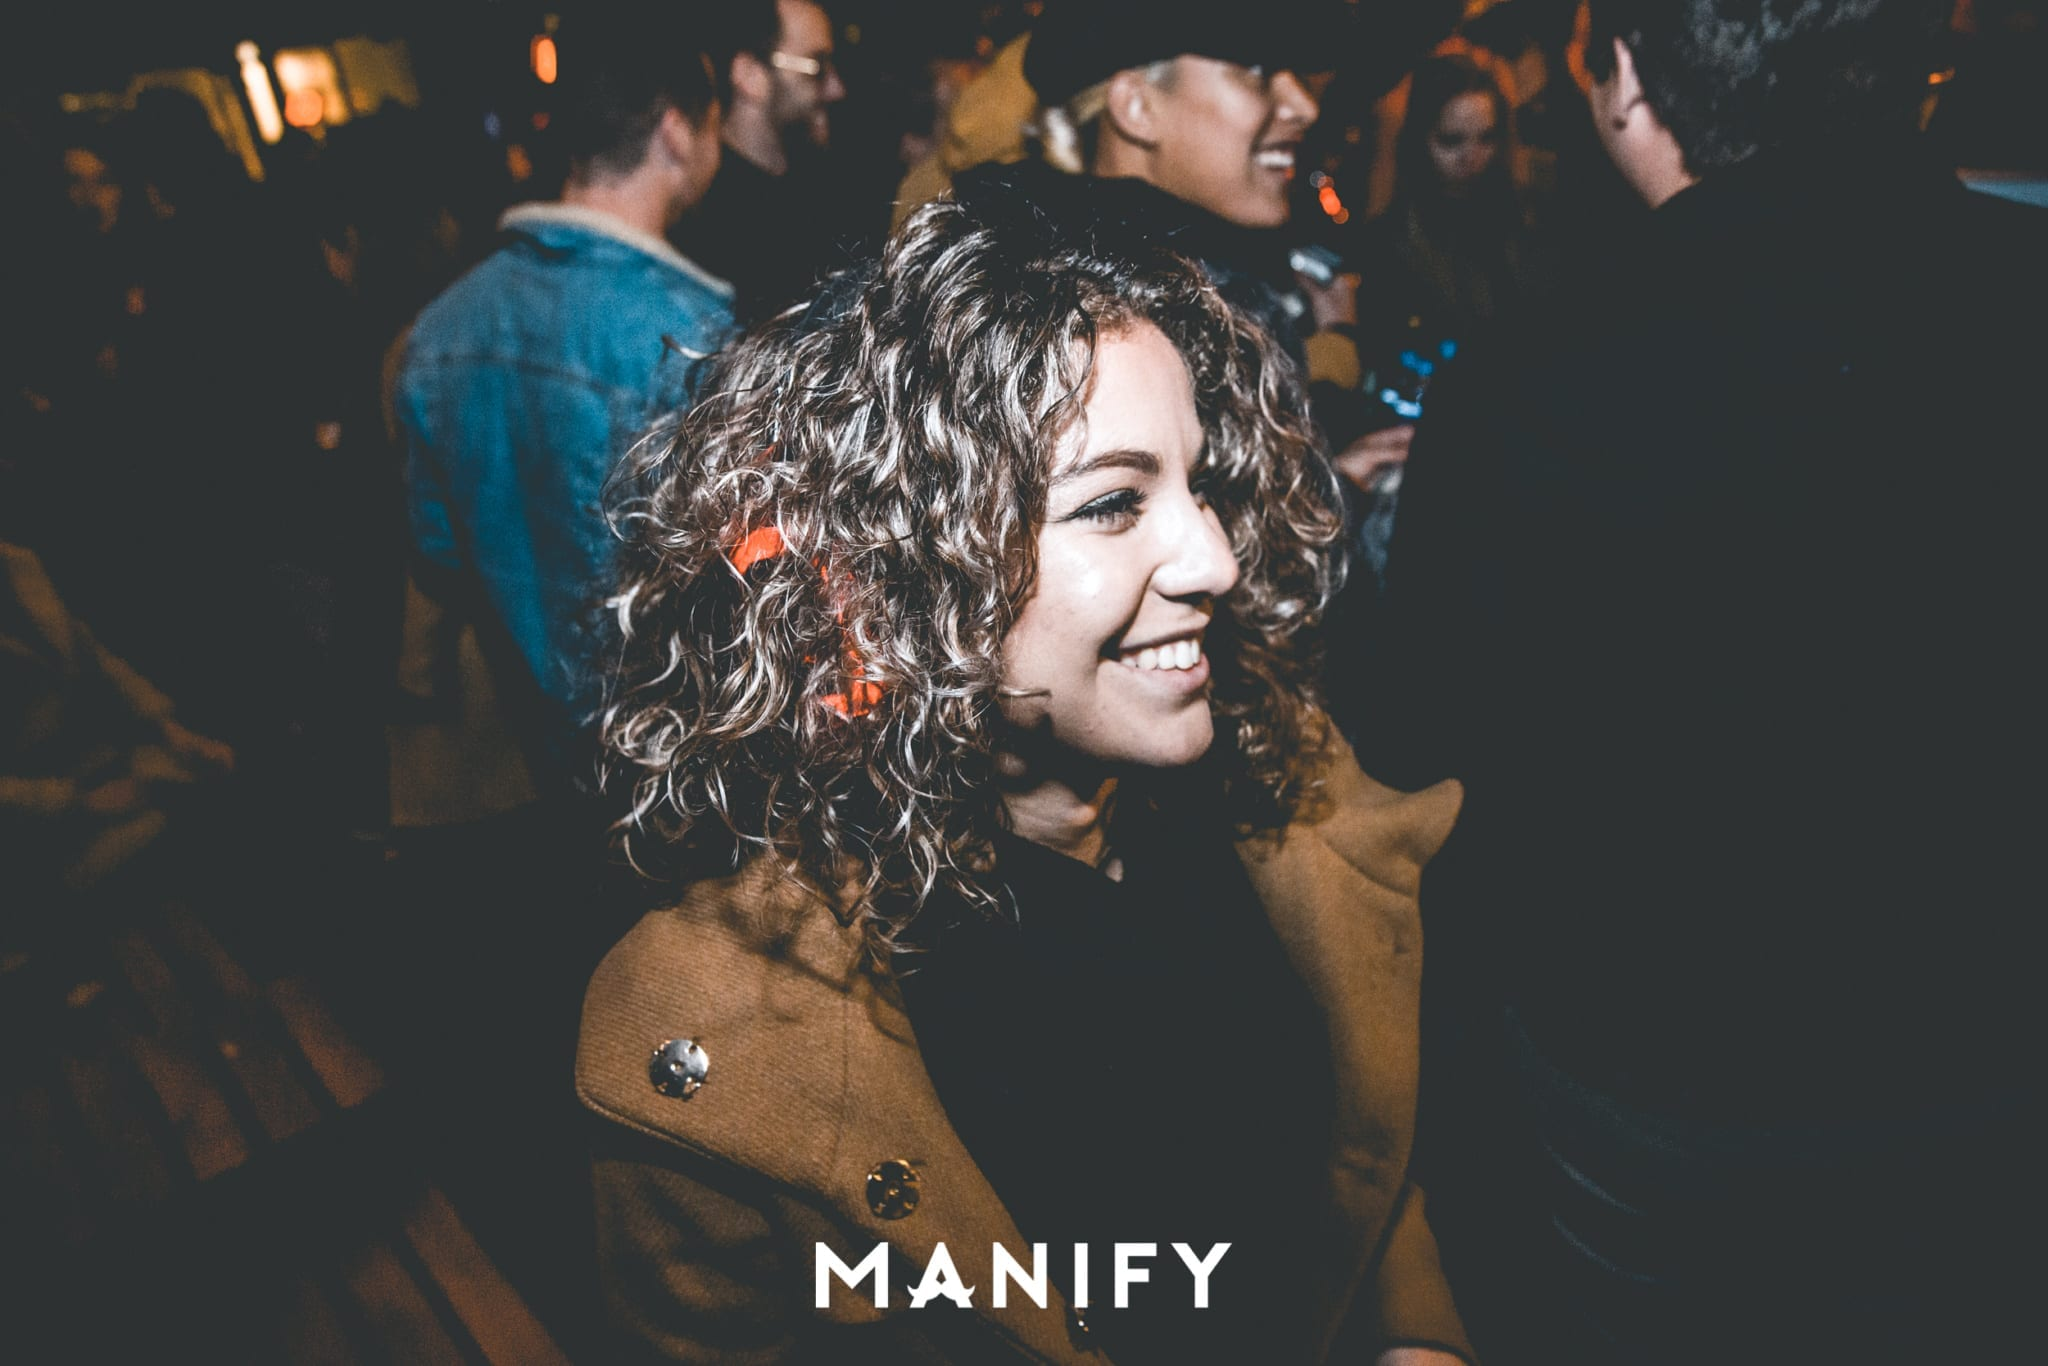 Manify_Out_of_office-E10_WM-91-manify